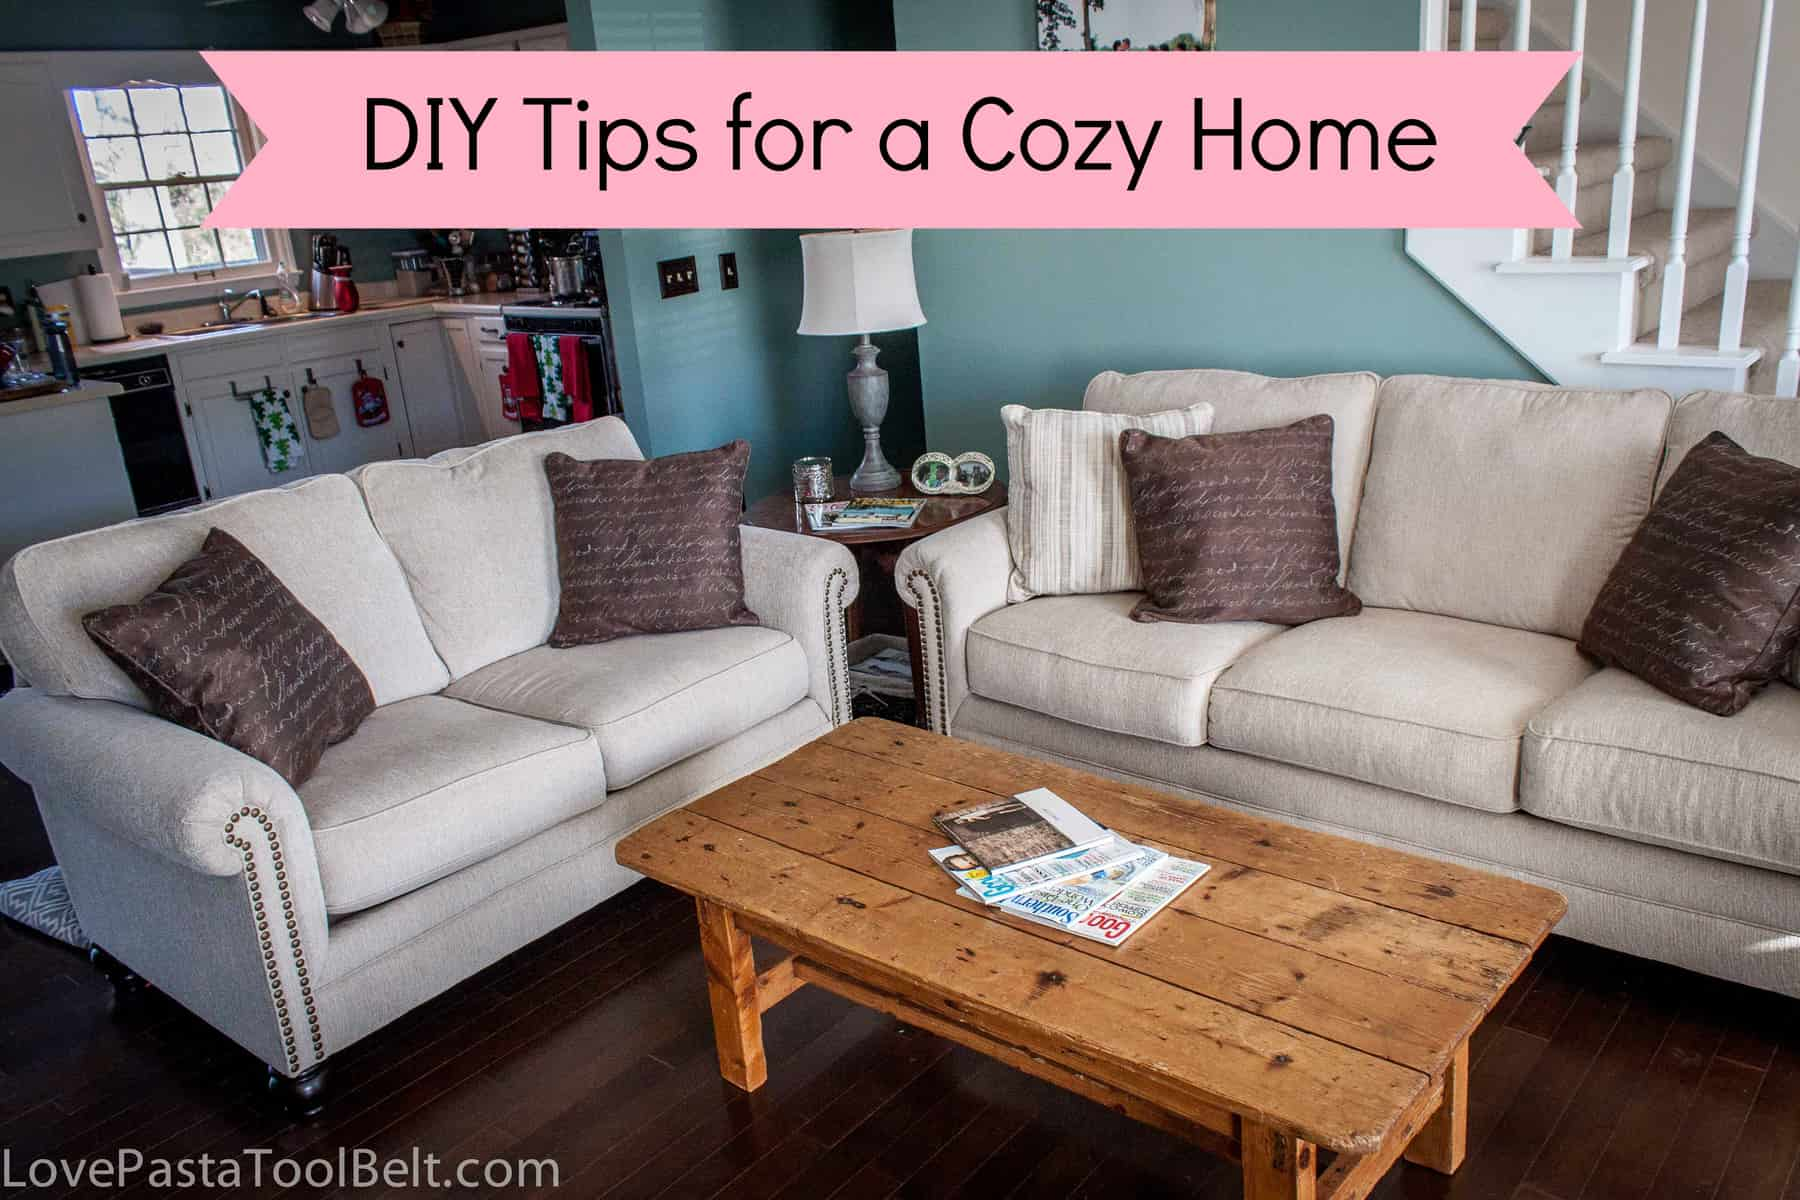 DIY Tips for a Cozy Home - Love, Pasta, and a Tool Belt